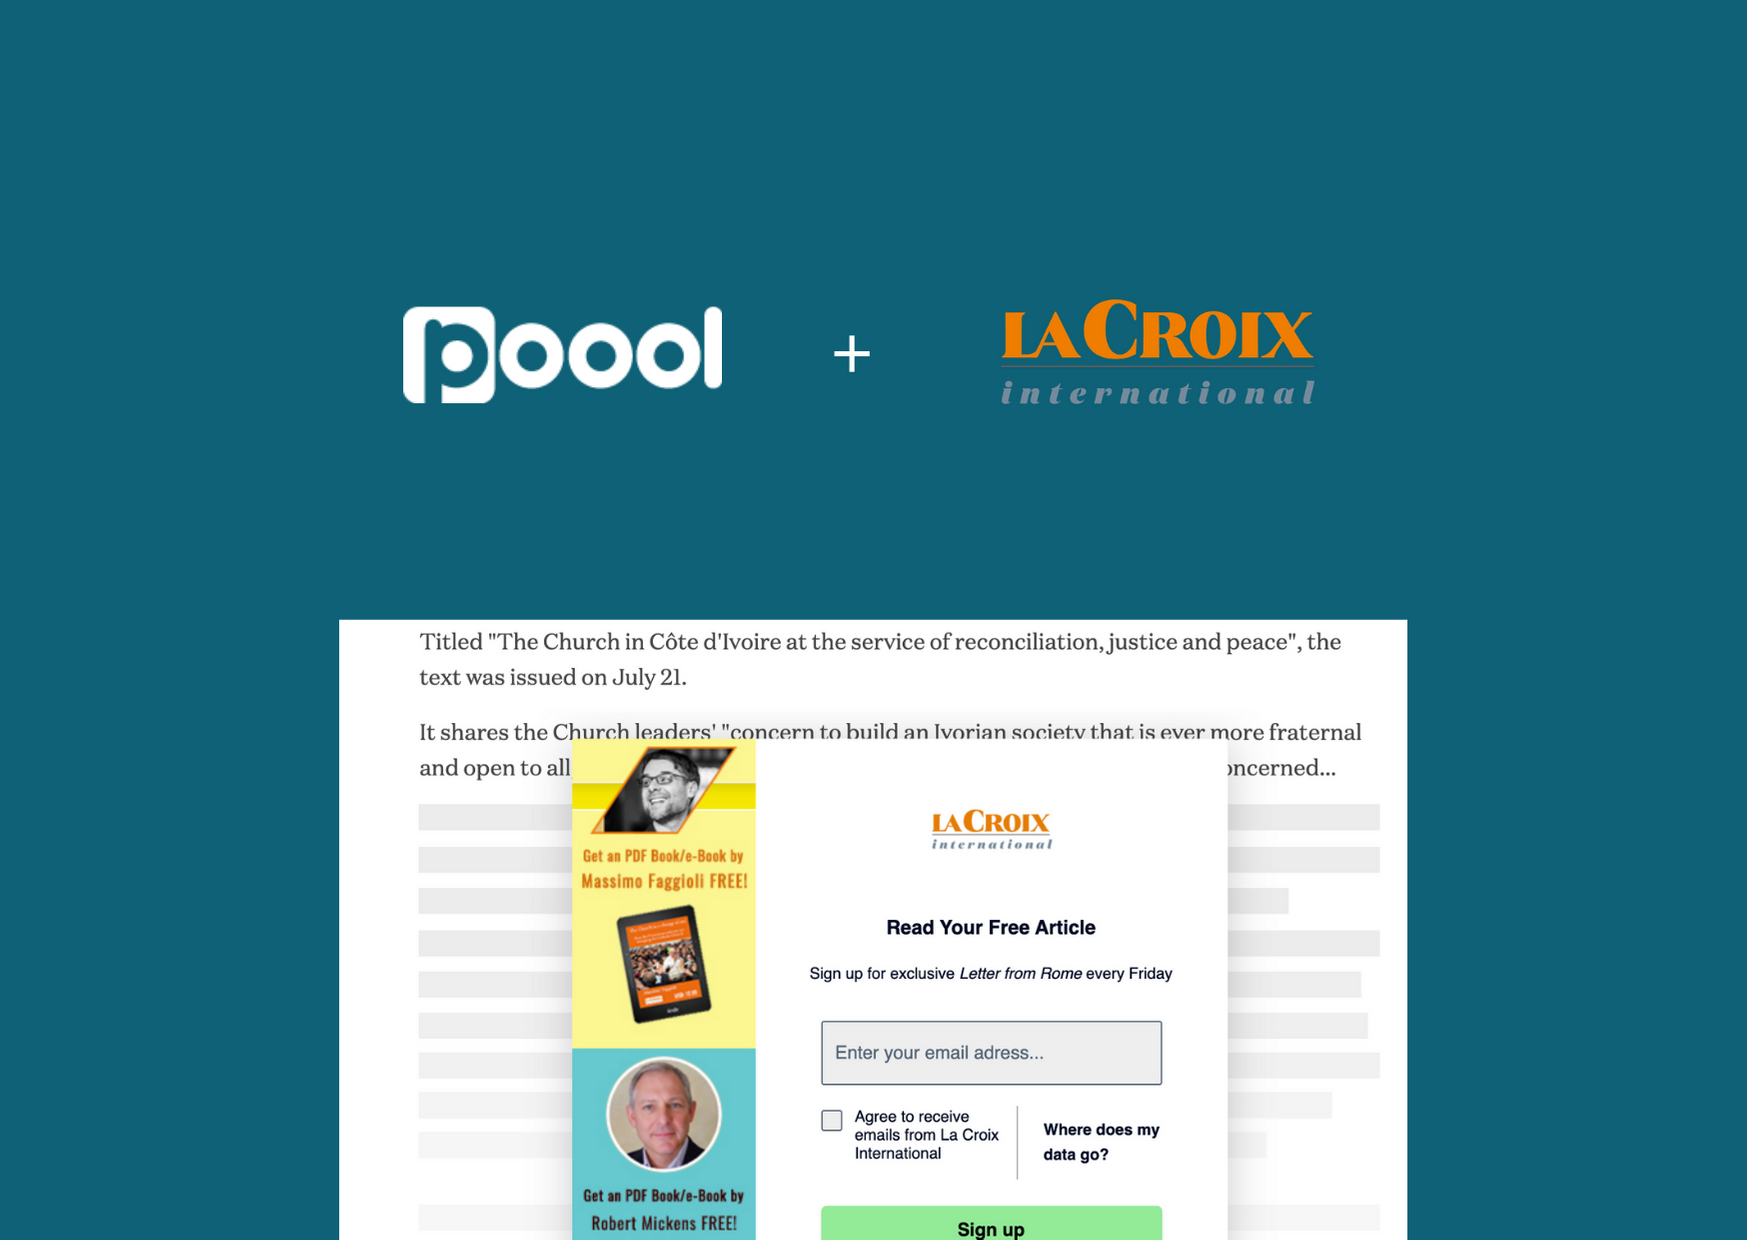 Success Story : Comment l'utilisation de Poool Access a permis à La Croix International de concilier trafic, engagement et conversion ?